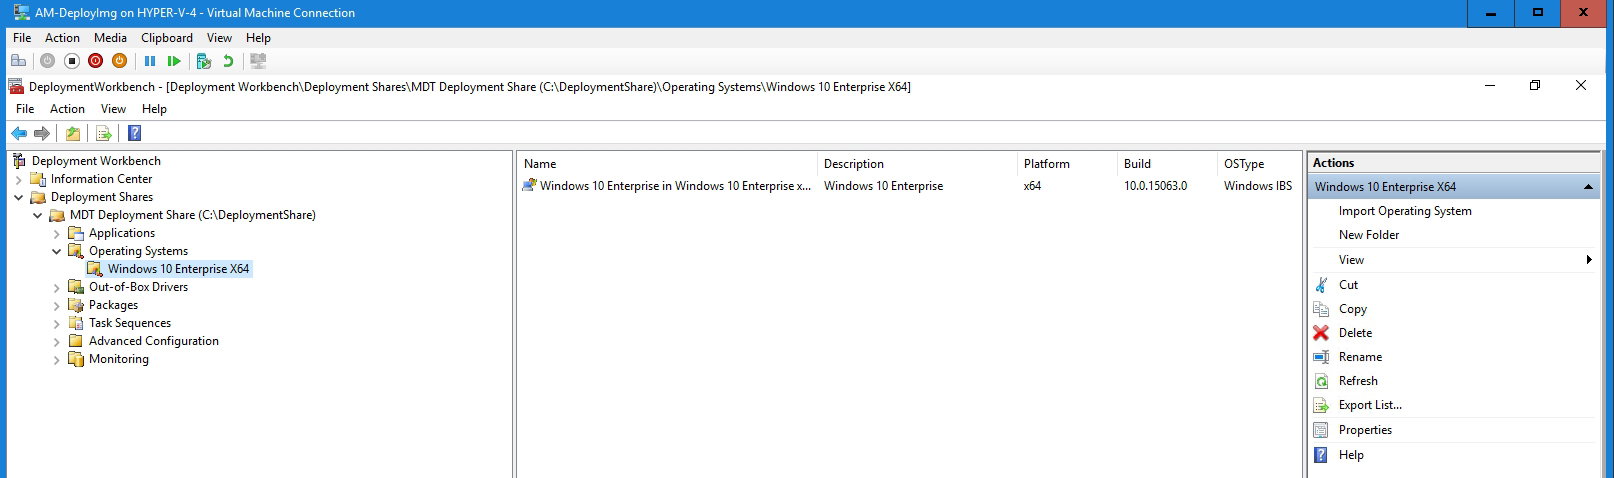 How To Create a Windows Deployment Image, Part 2